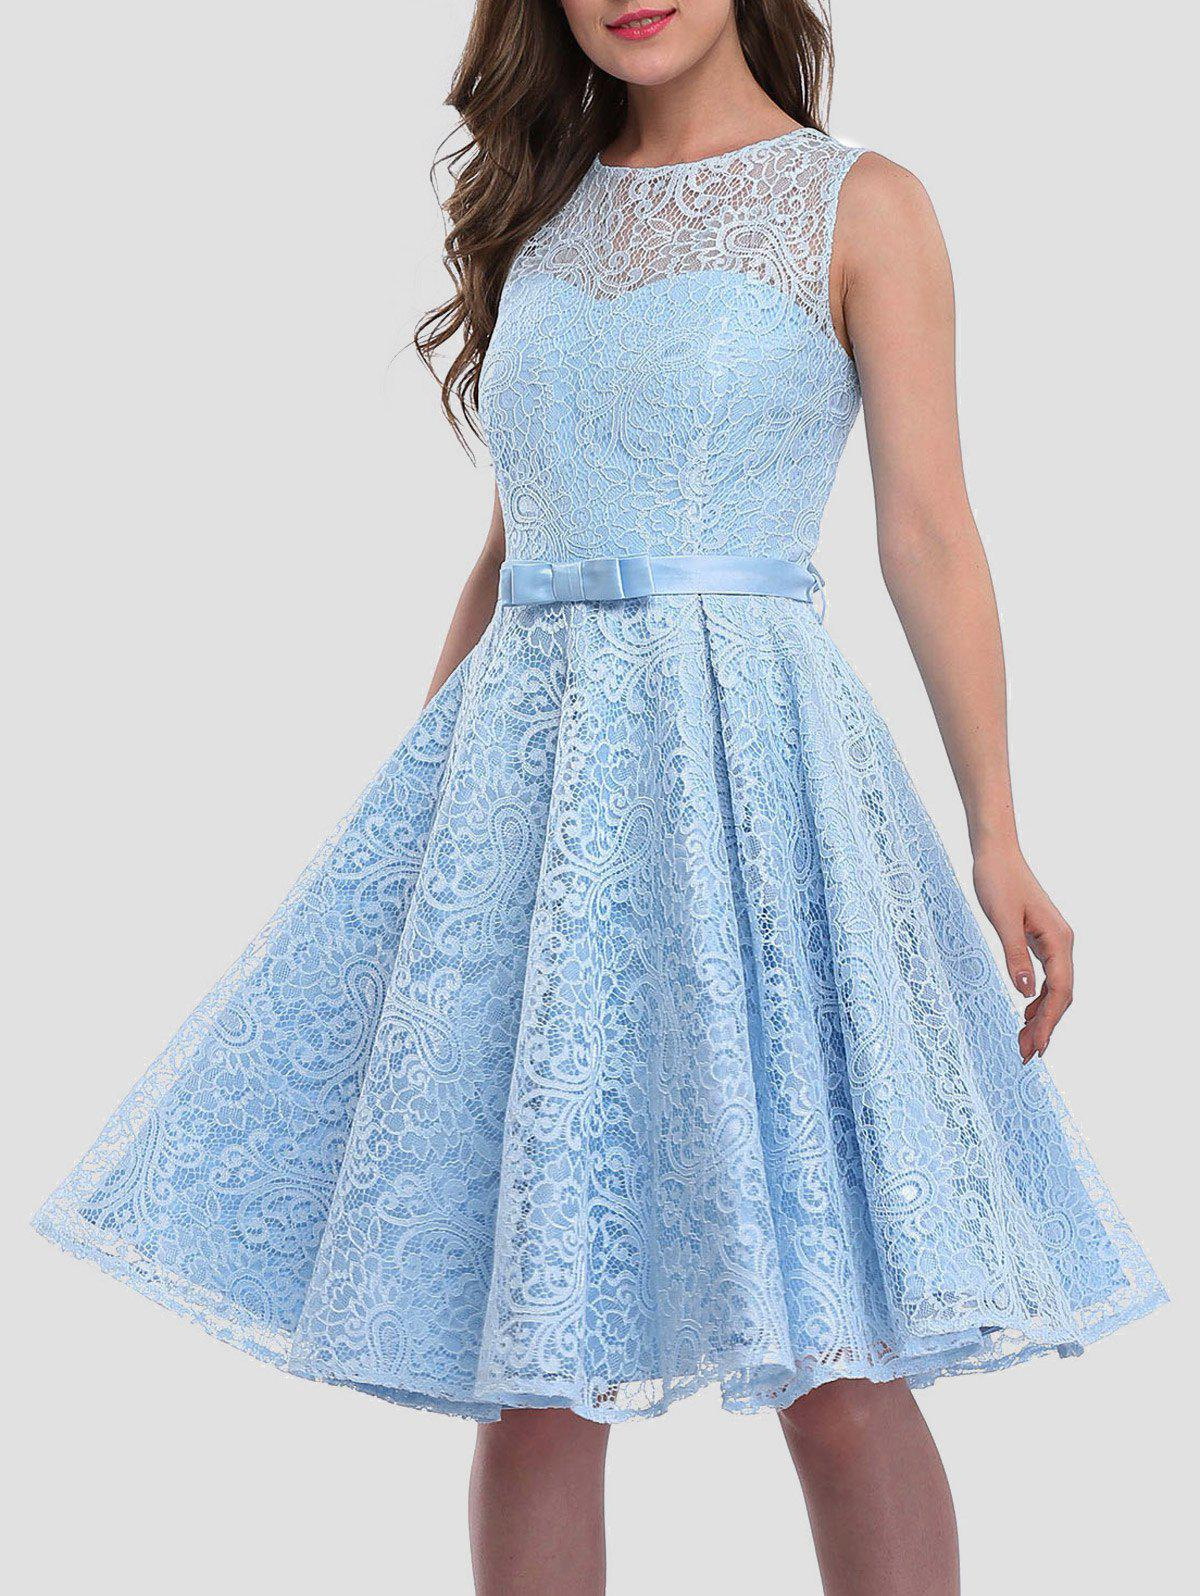 2018 Lace Skater Cocktail Homecoming Formal Dress ICE BLUE XL In ...